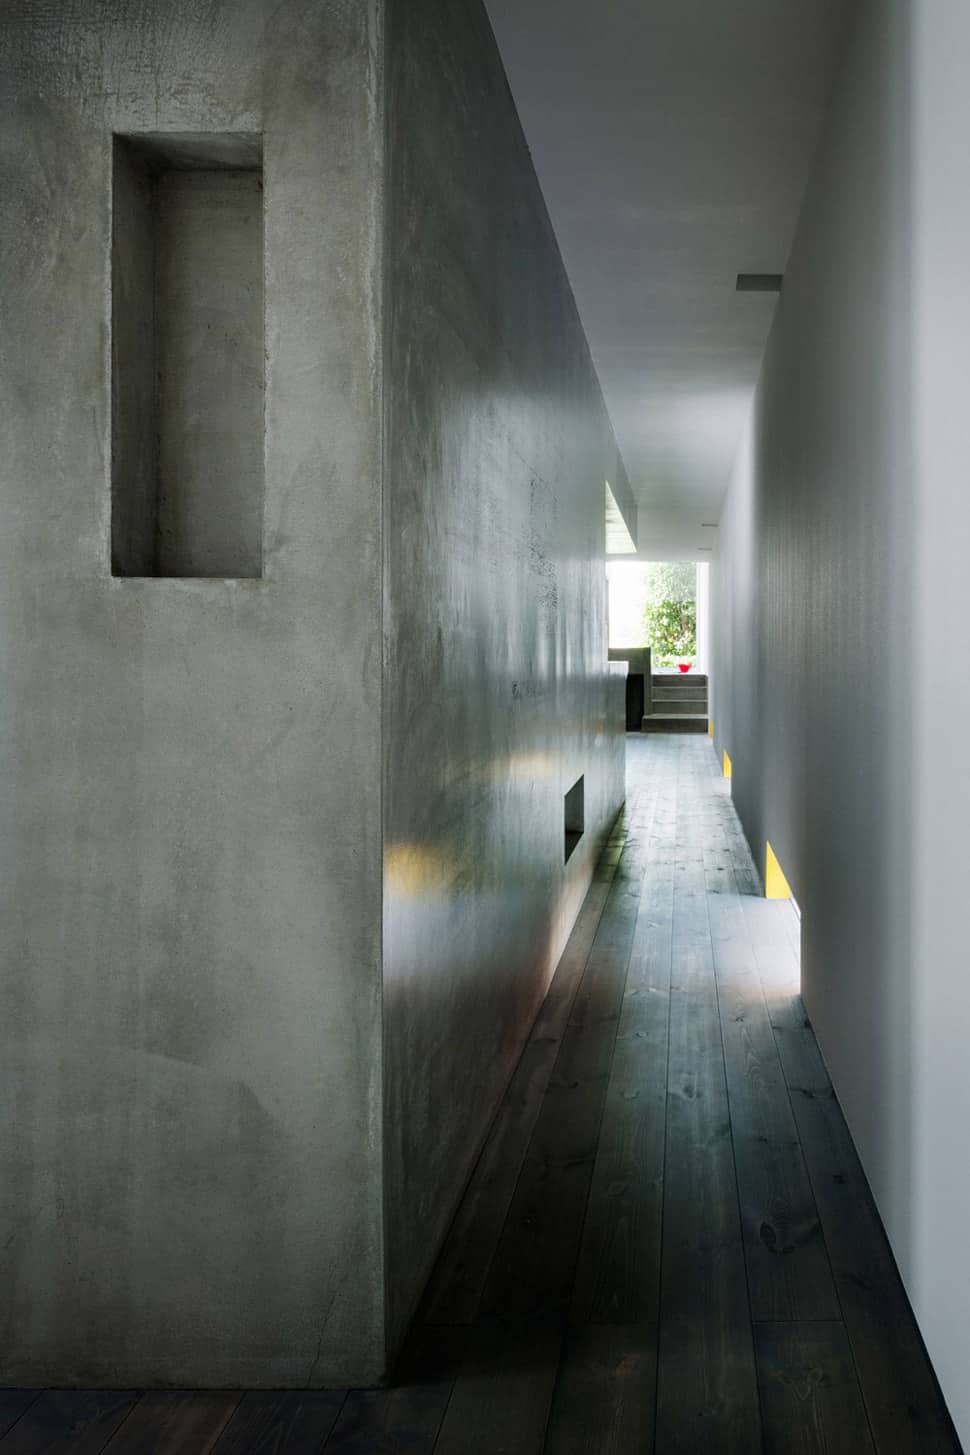 Concrete Rooms Narrow Urban Home With Concrete Walls And Upper Bridge